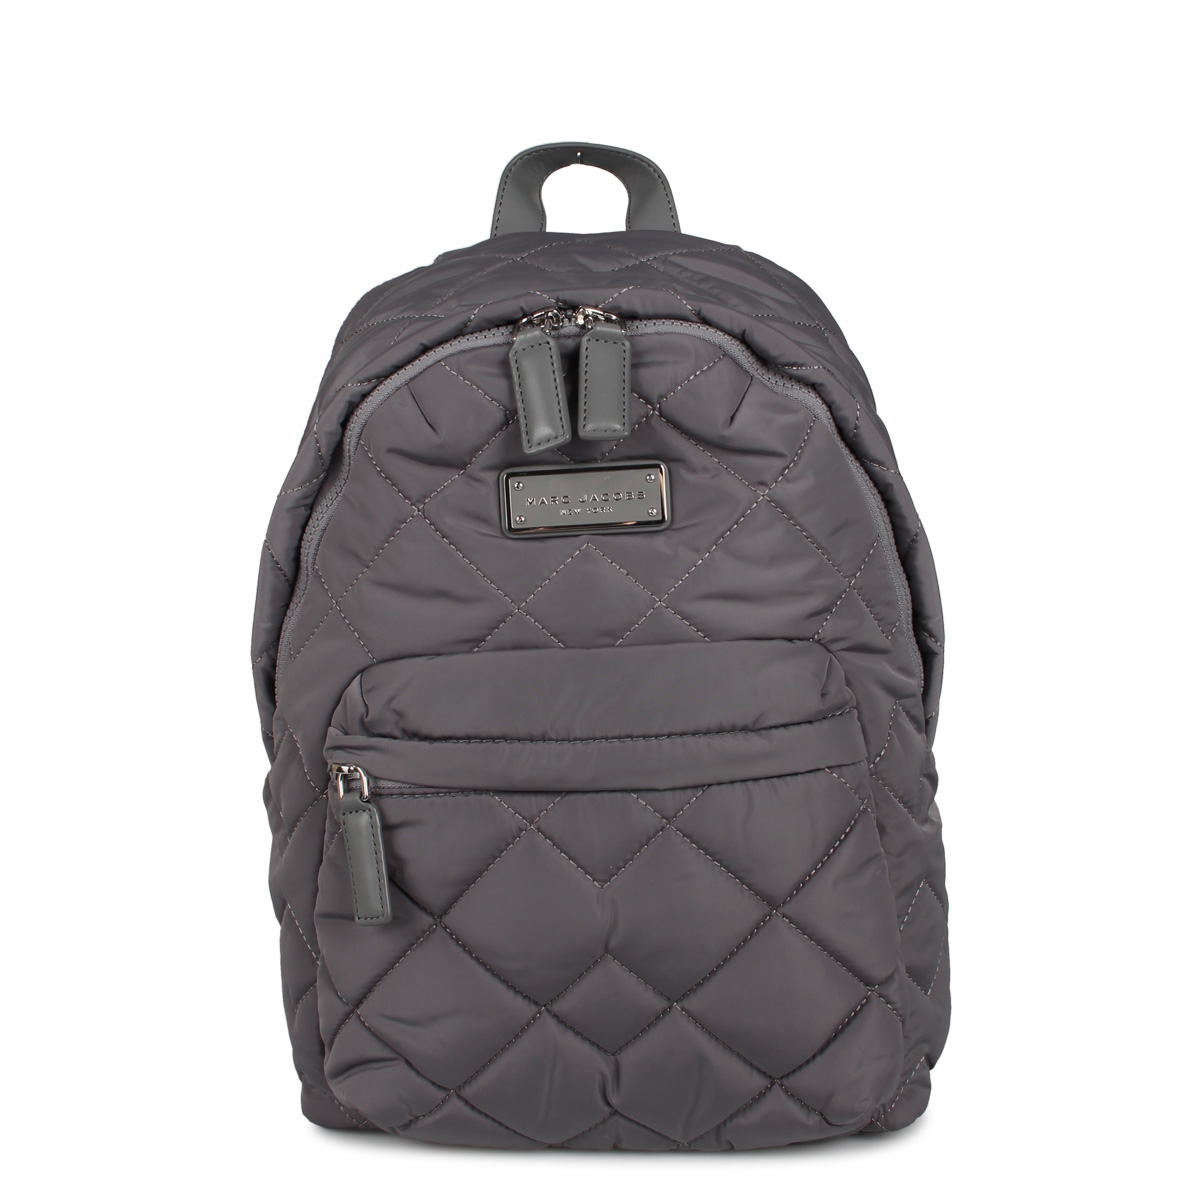 MARC JACOBS QUILTED BACKPACK マークジェイコブス リュック バッグ バックパック レディース グレー M0011321-097 [4/27 新入荷]